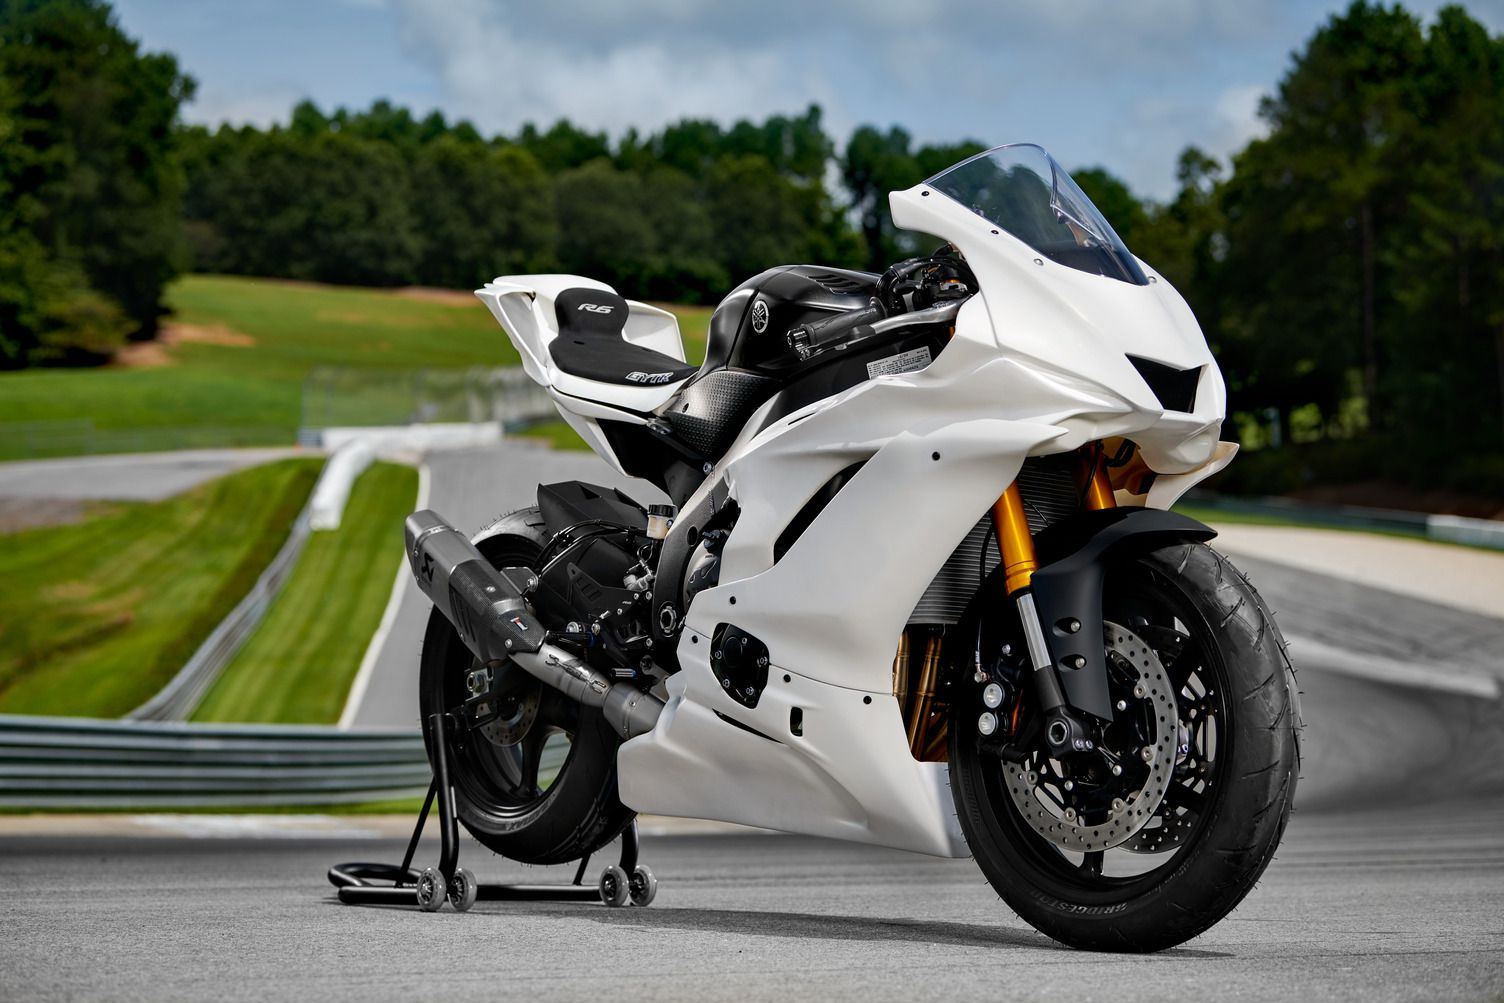 The R6 returns for 2022 as the track-only YZF-R6 GYTR, available in limited numbers.